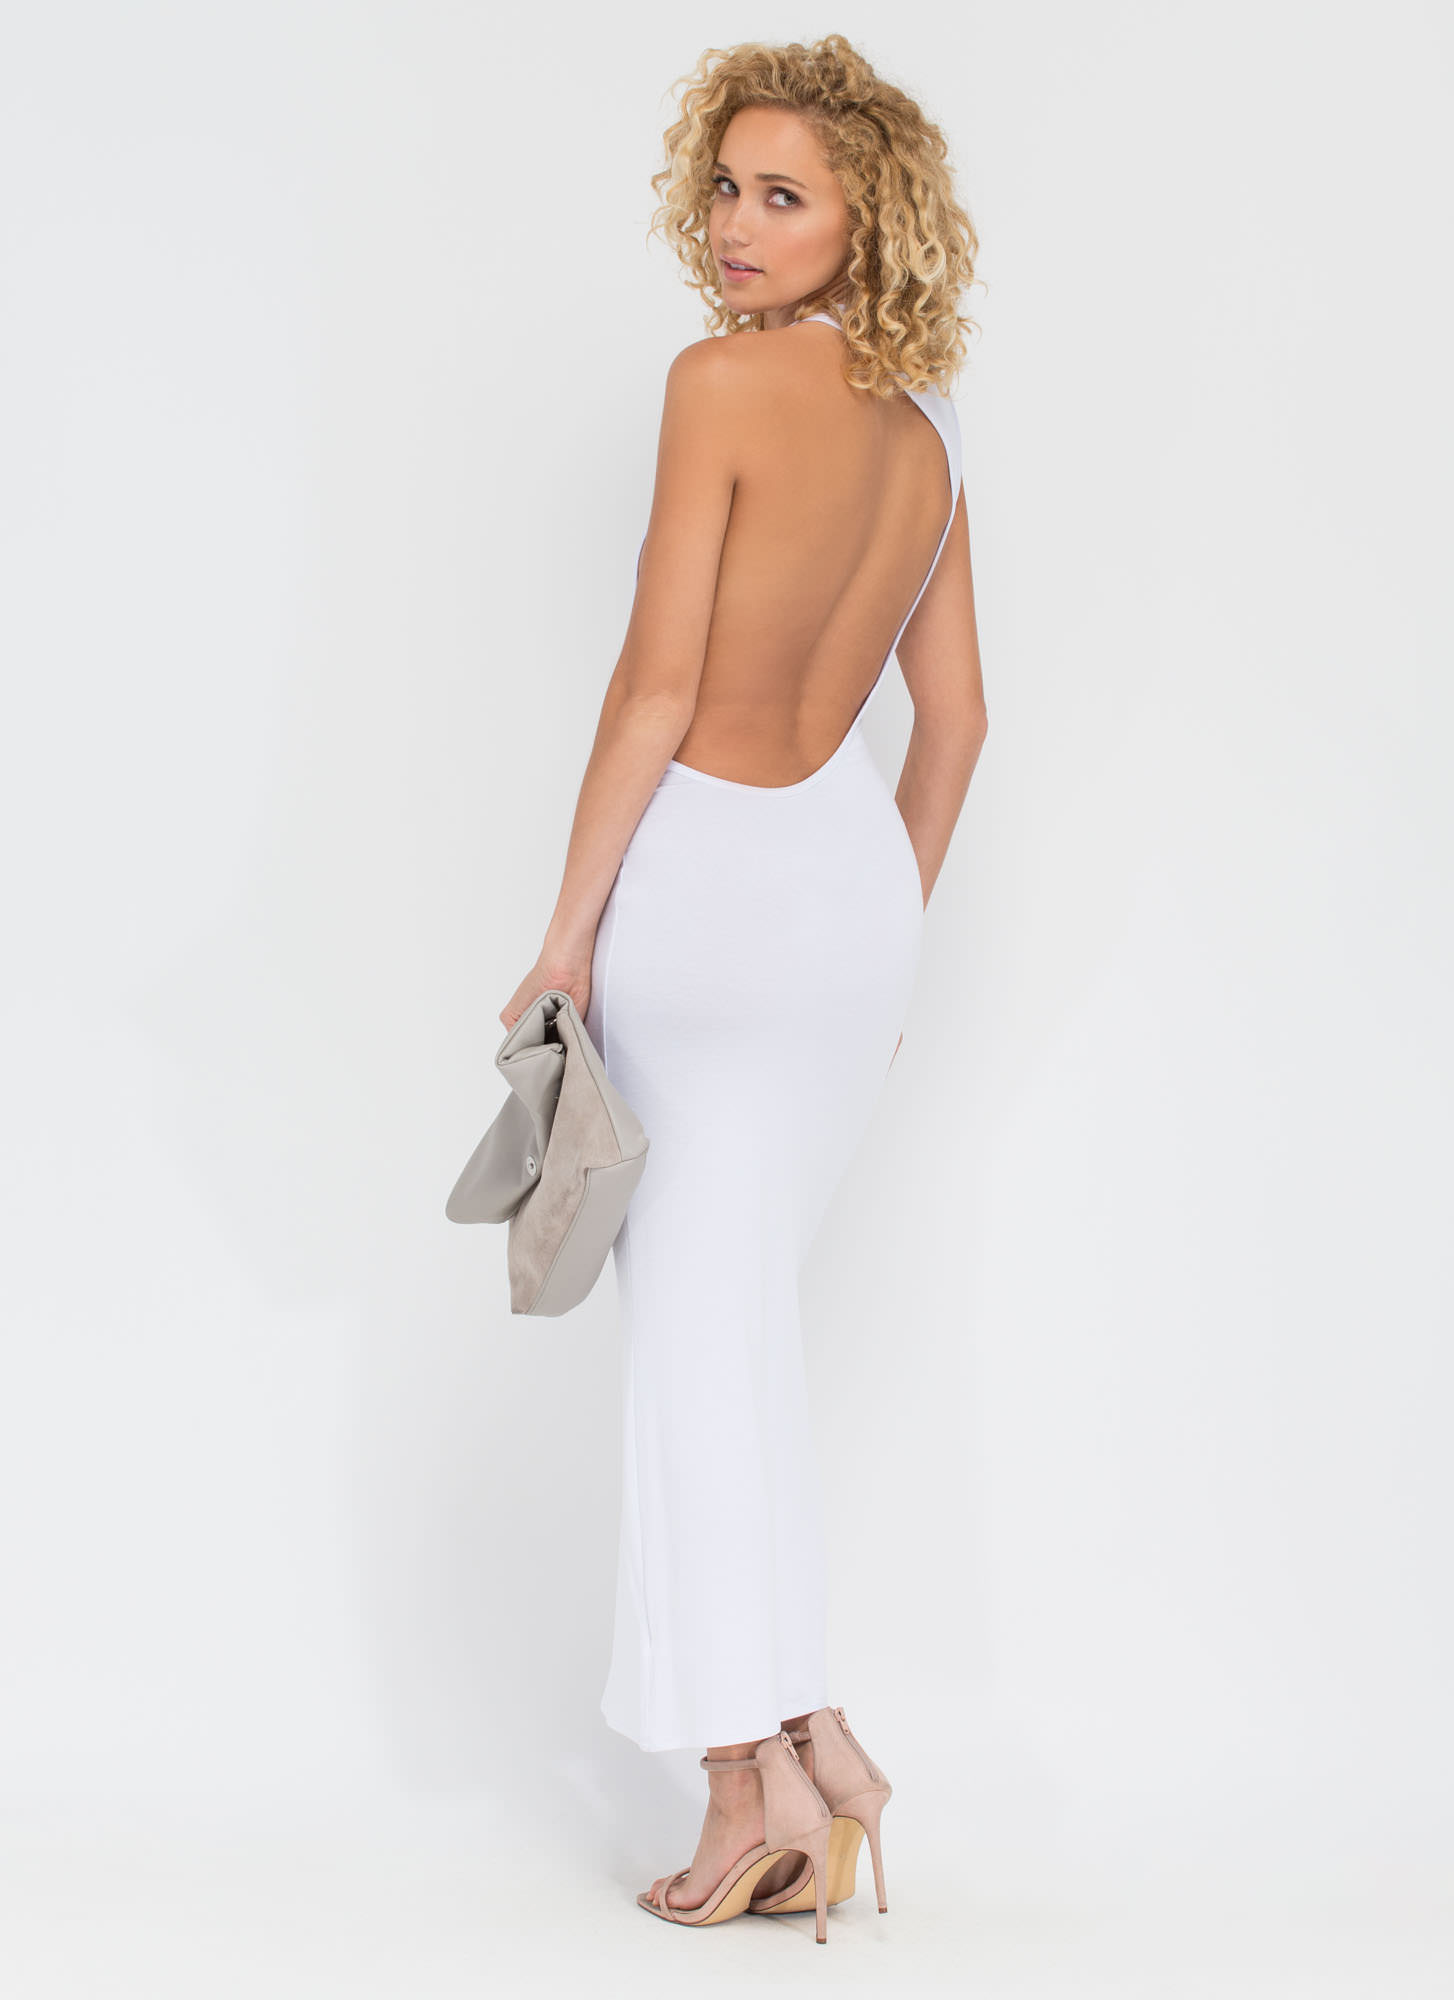 Go Halfsies Open Back Maxi Dress WHITE (Final Sale)